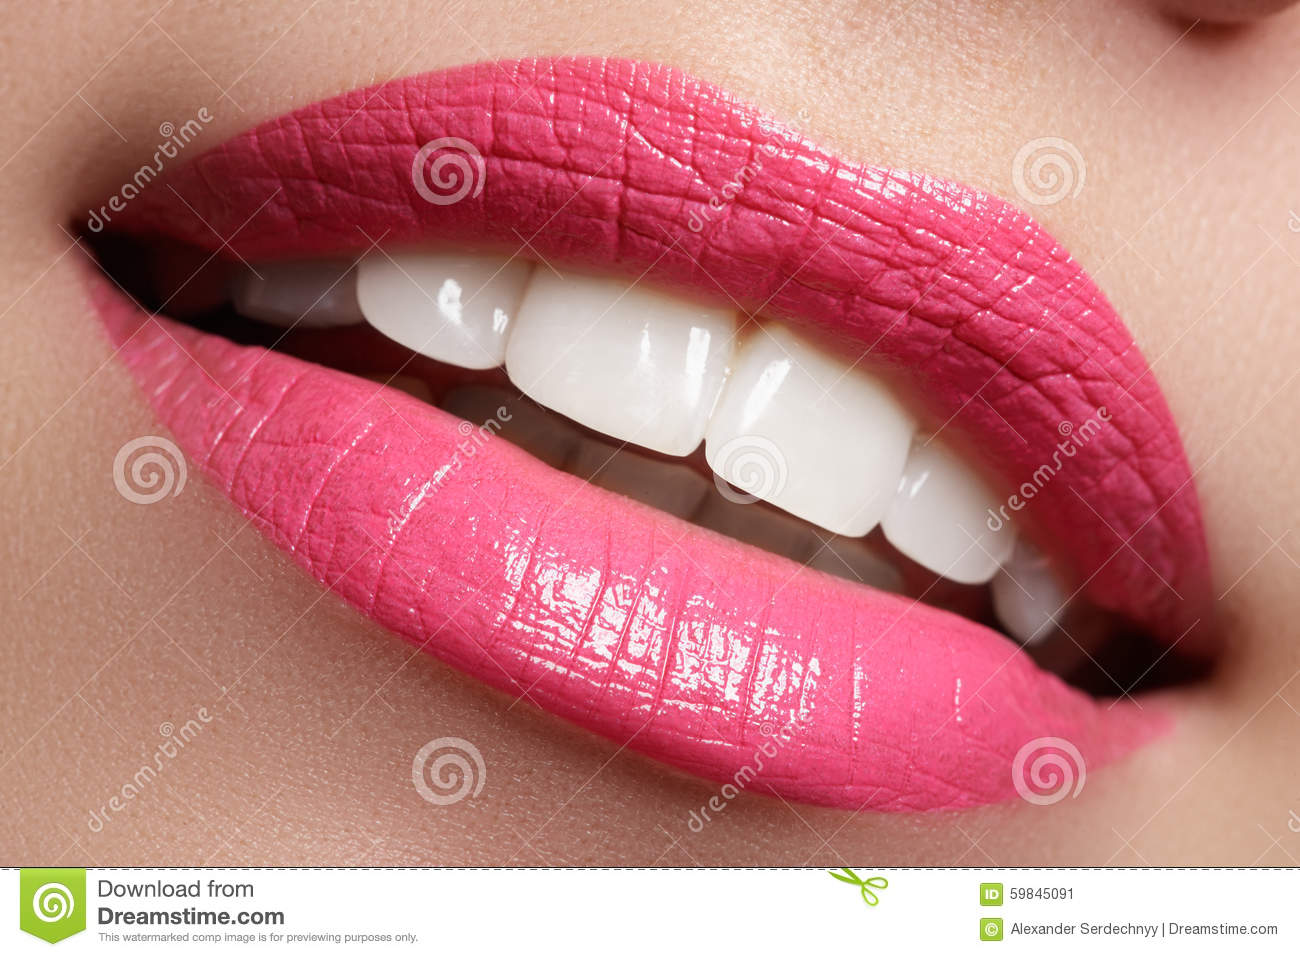 perfect-smile-bleaching-dental-care-whitening-teeth-woman-smile-great-teeth-close-up-smile-white-healthy-59845091.jpg